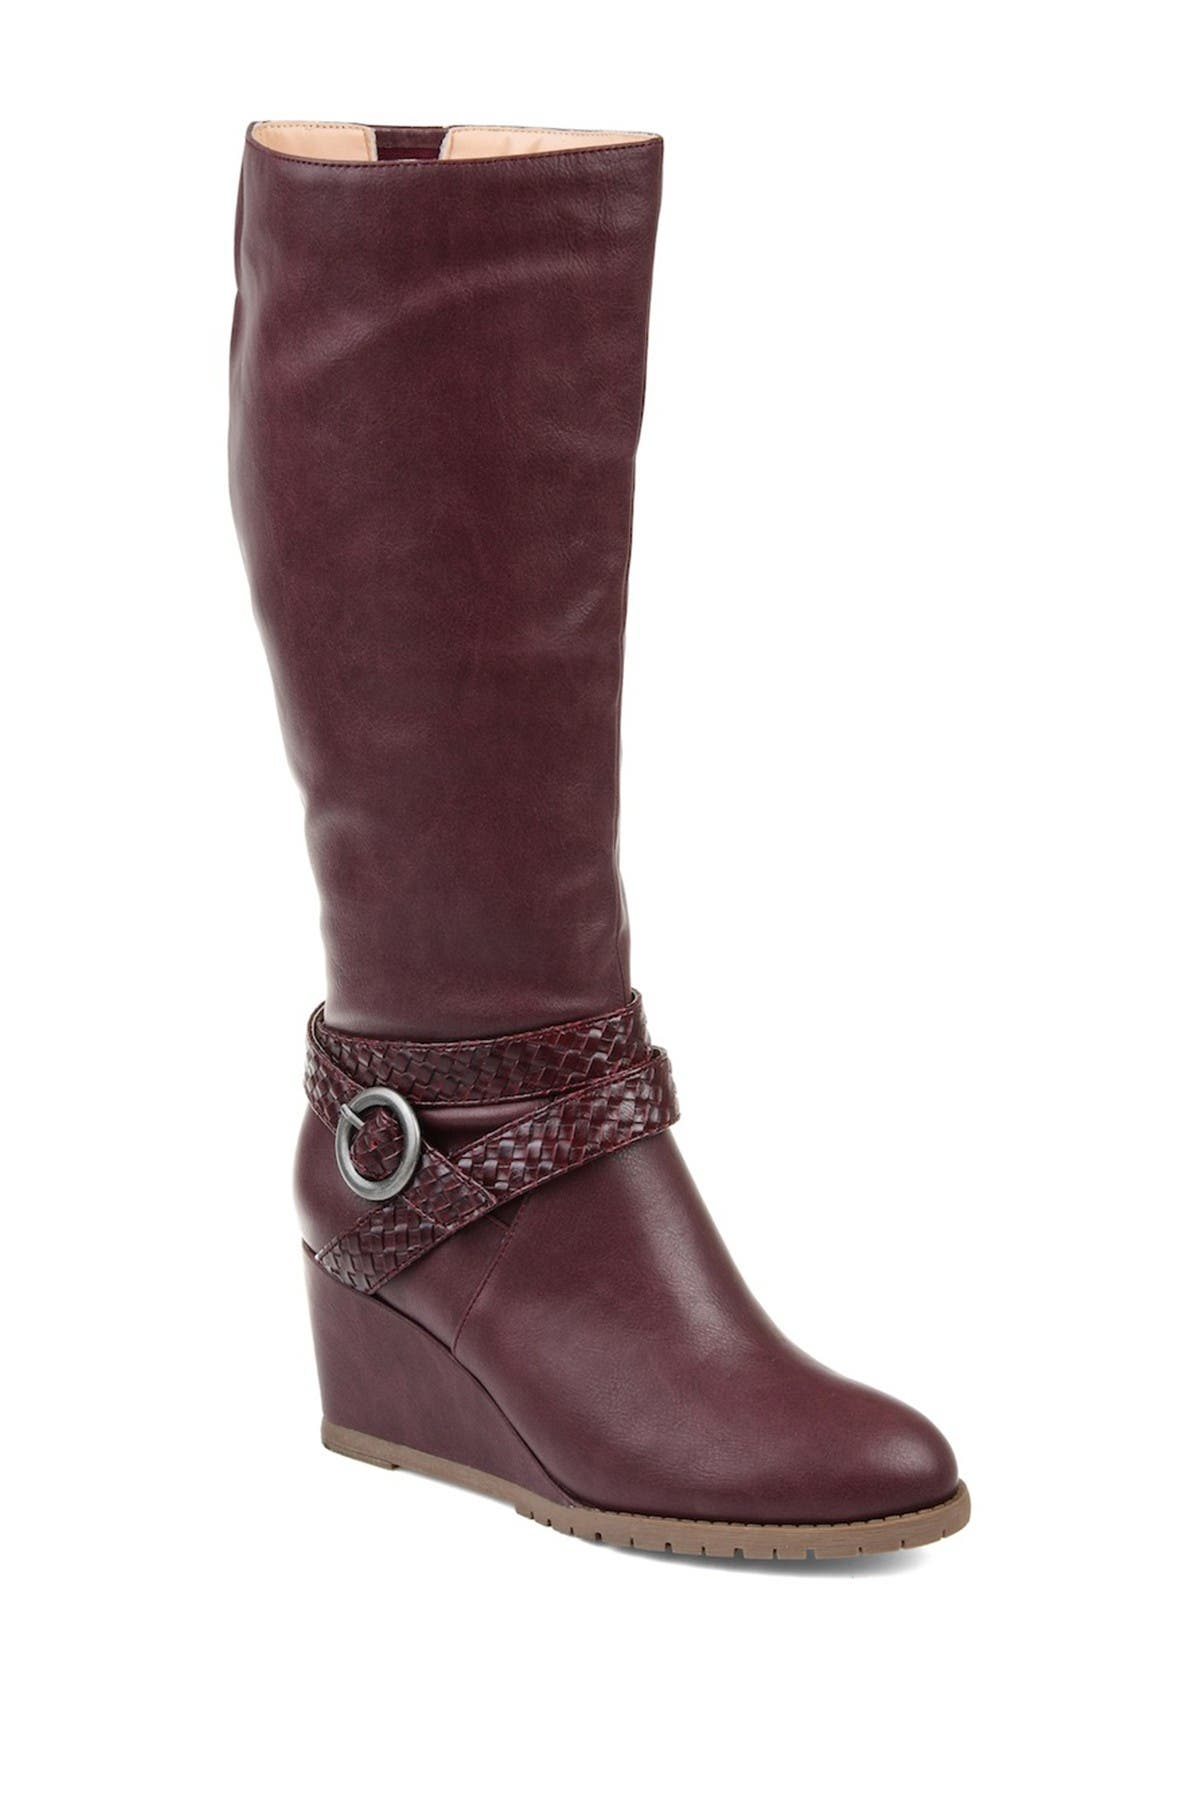 Image of JOURNEE Collection Garin Waterproof Faux Fur Trim Boot